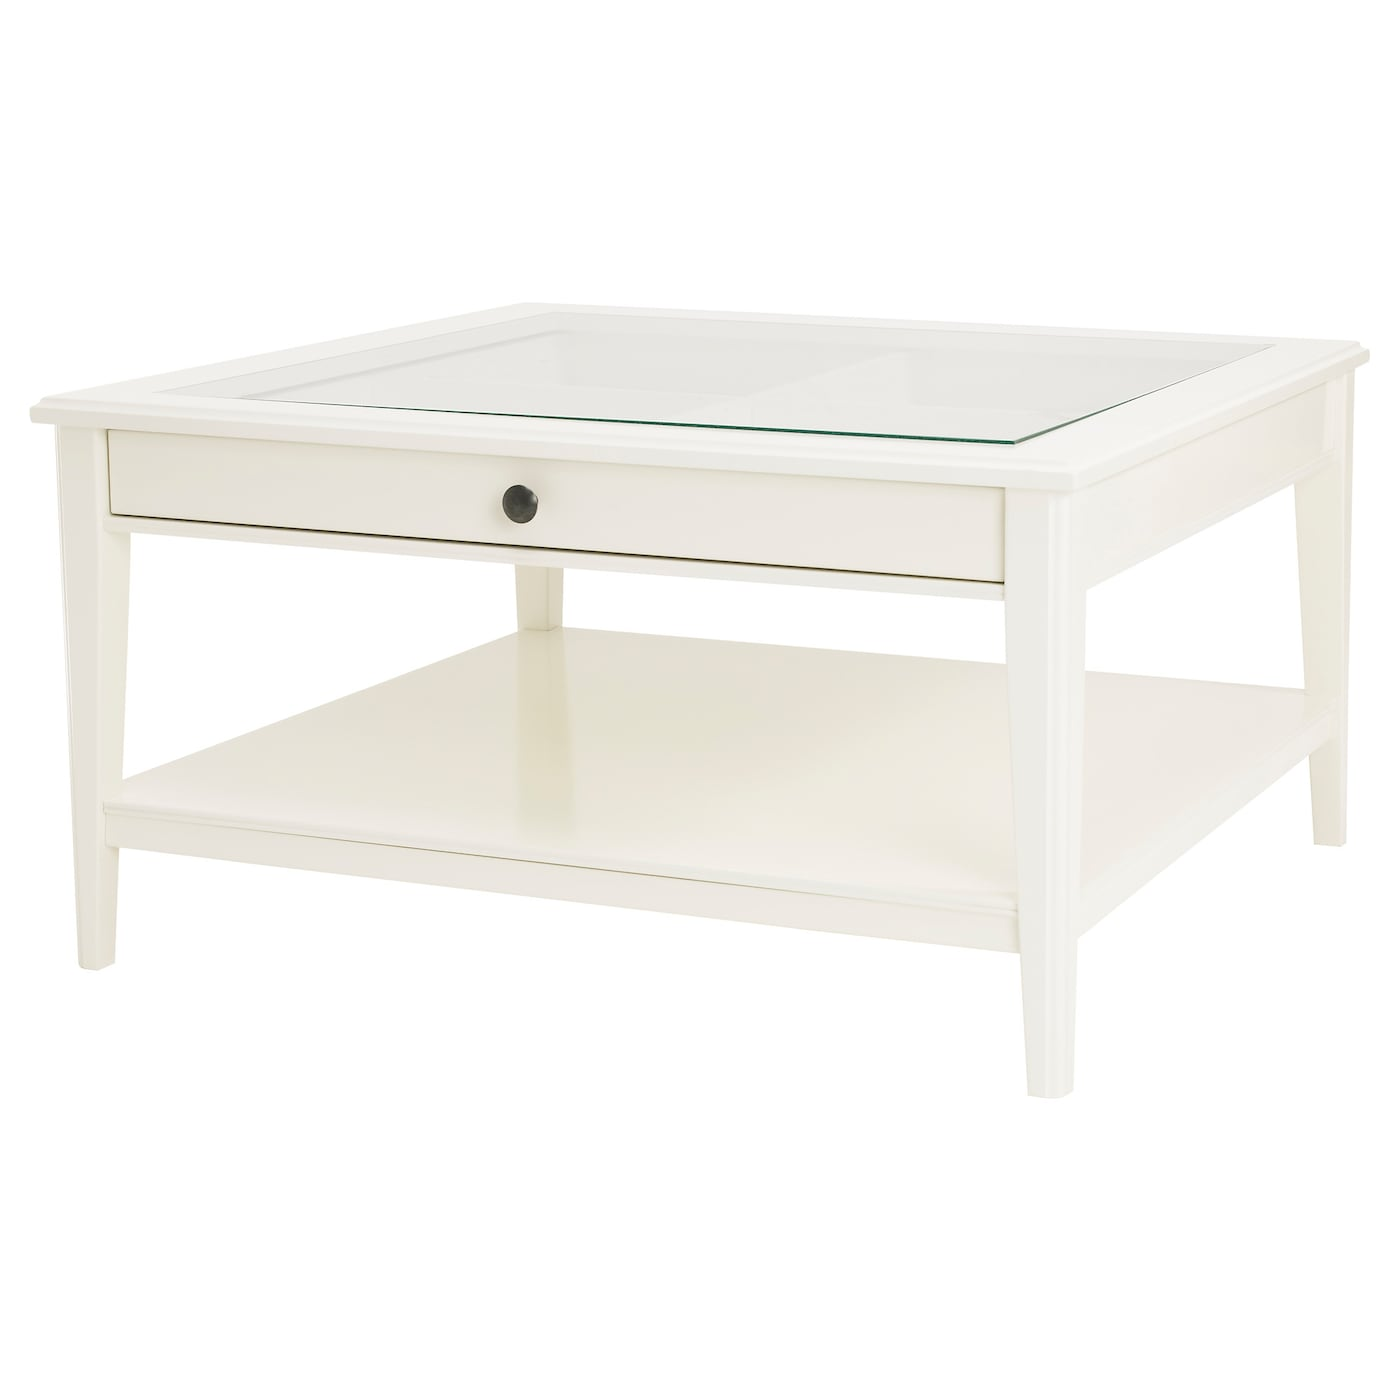 liatorp coffee table white glass 93x93 cm ikea ForWhite And Glass Coffee Table